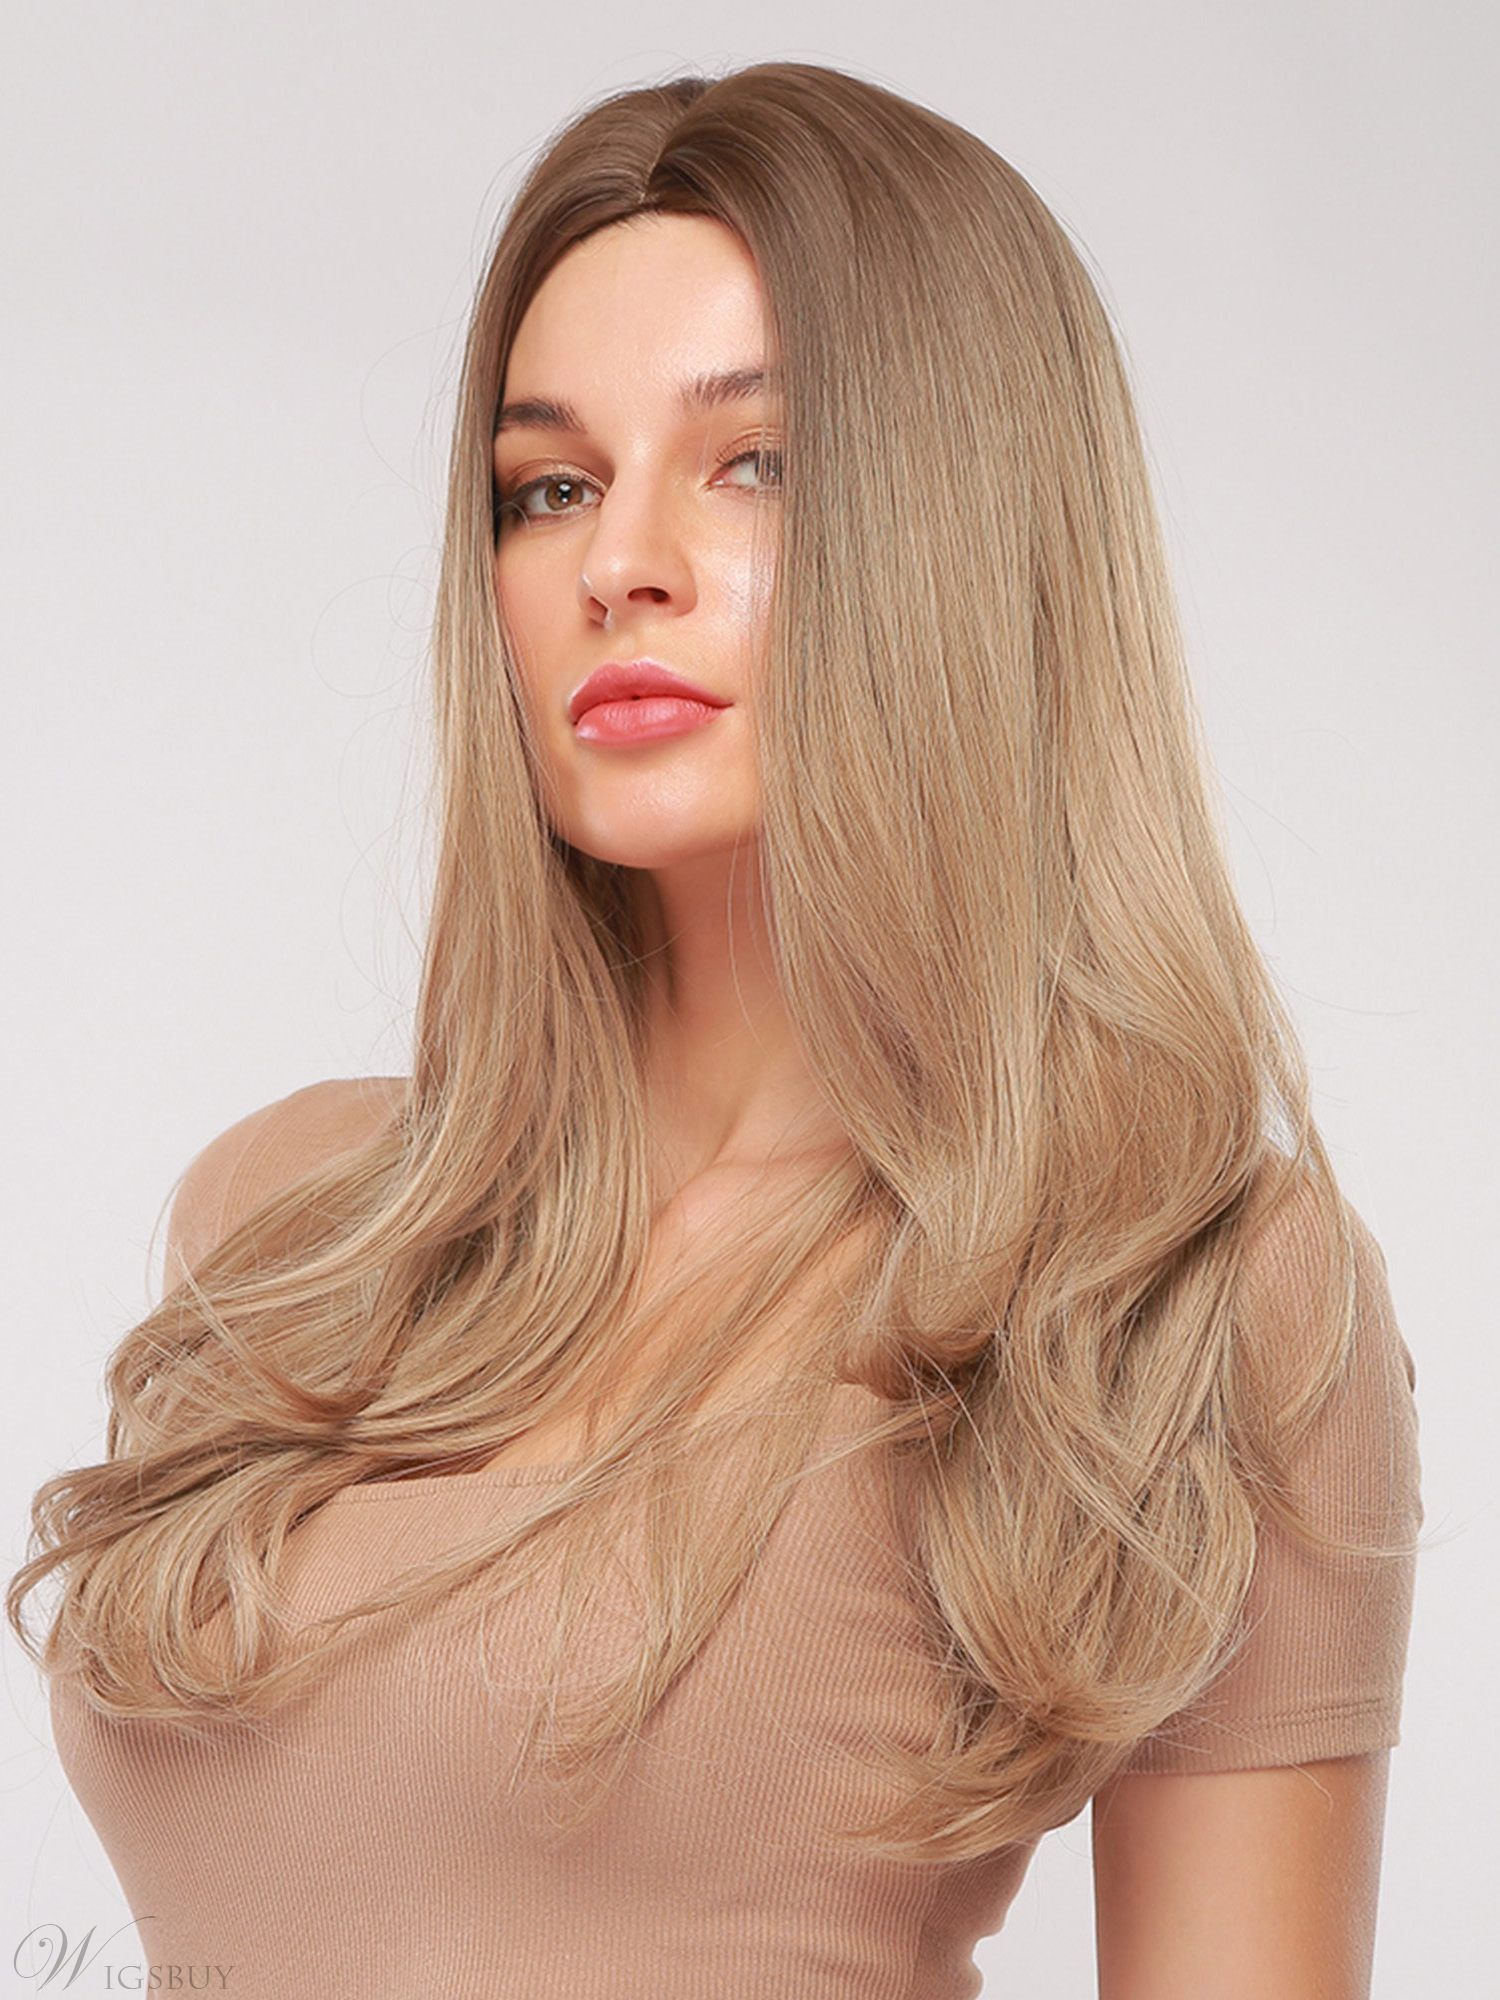 Middle Part Long Wavy Synthetic Hair With Bangs Women Wig 26 Inches